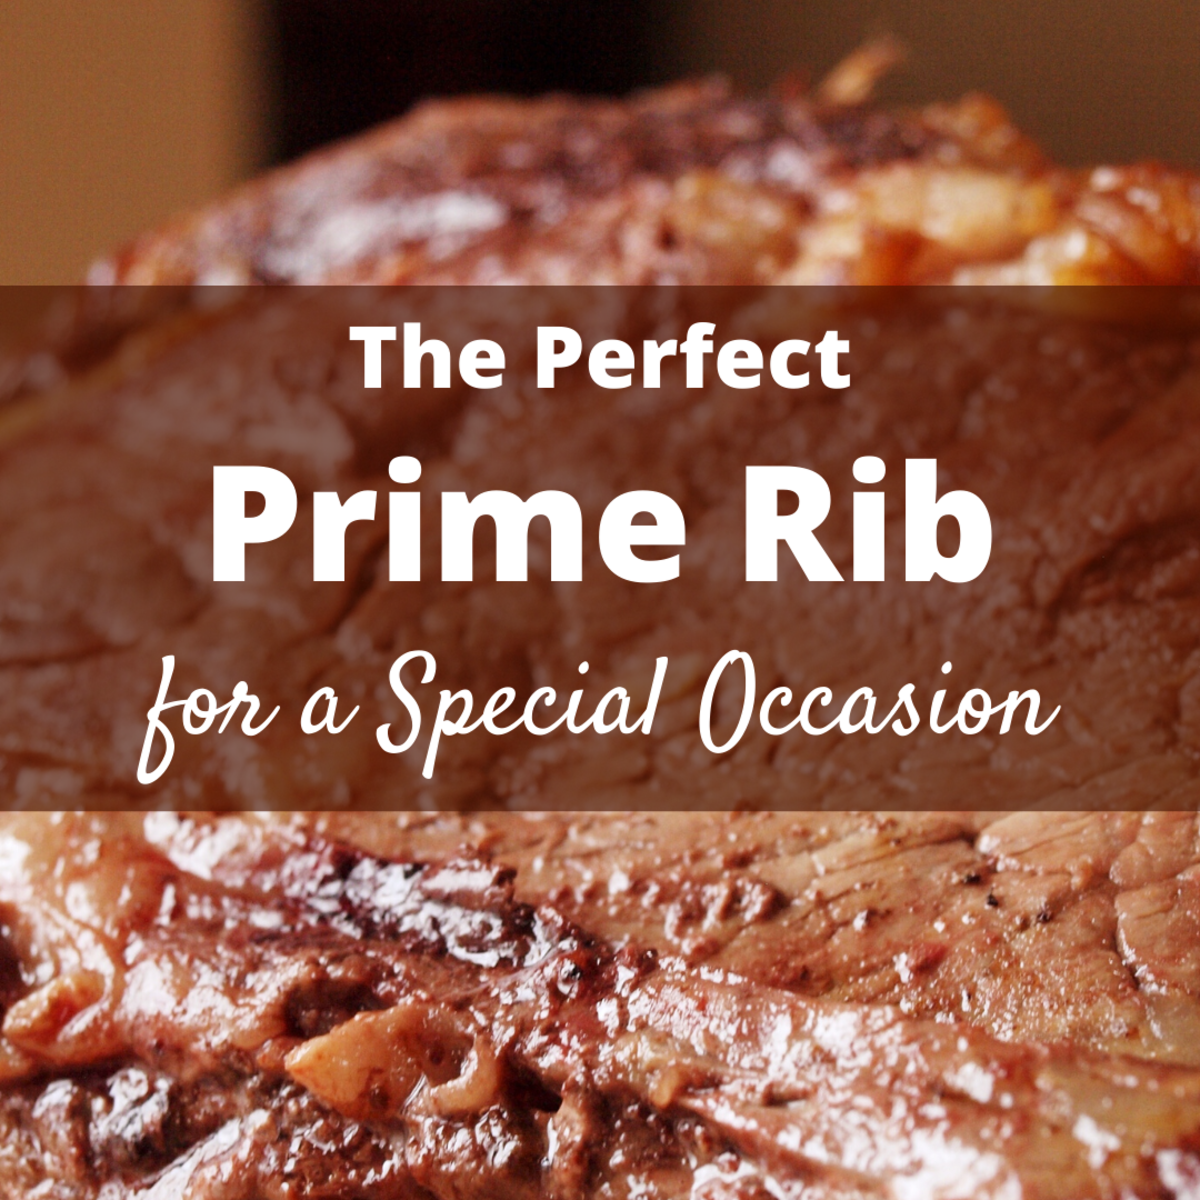 When it's time to splurge on a memorable feast for the holidays (or any occasion), try this prime rib recipe.